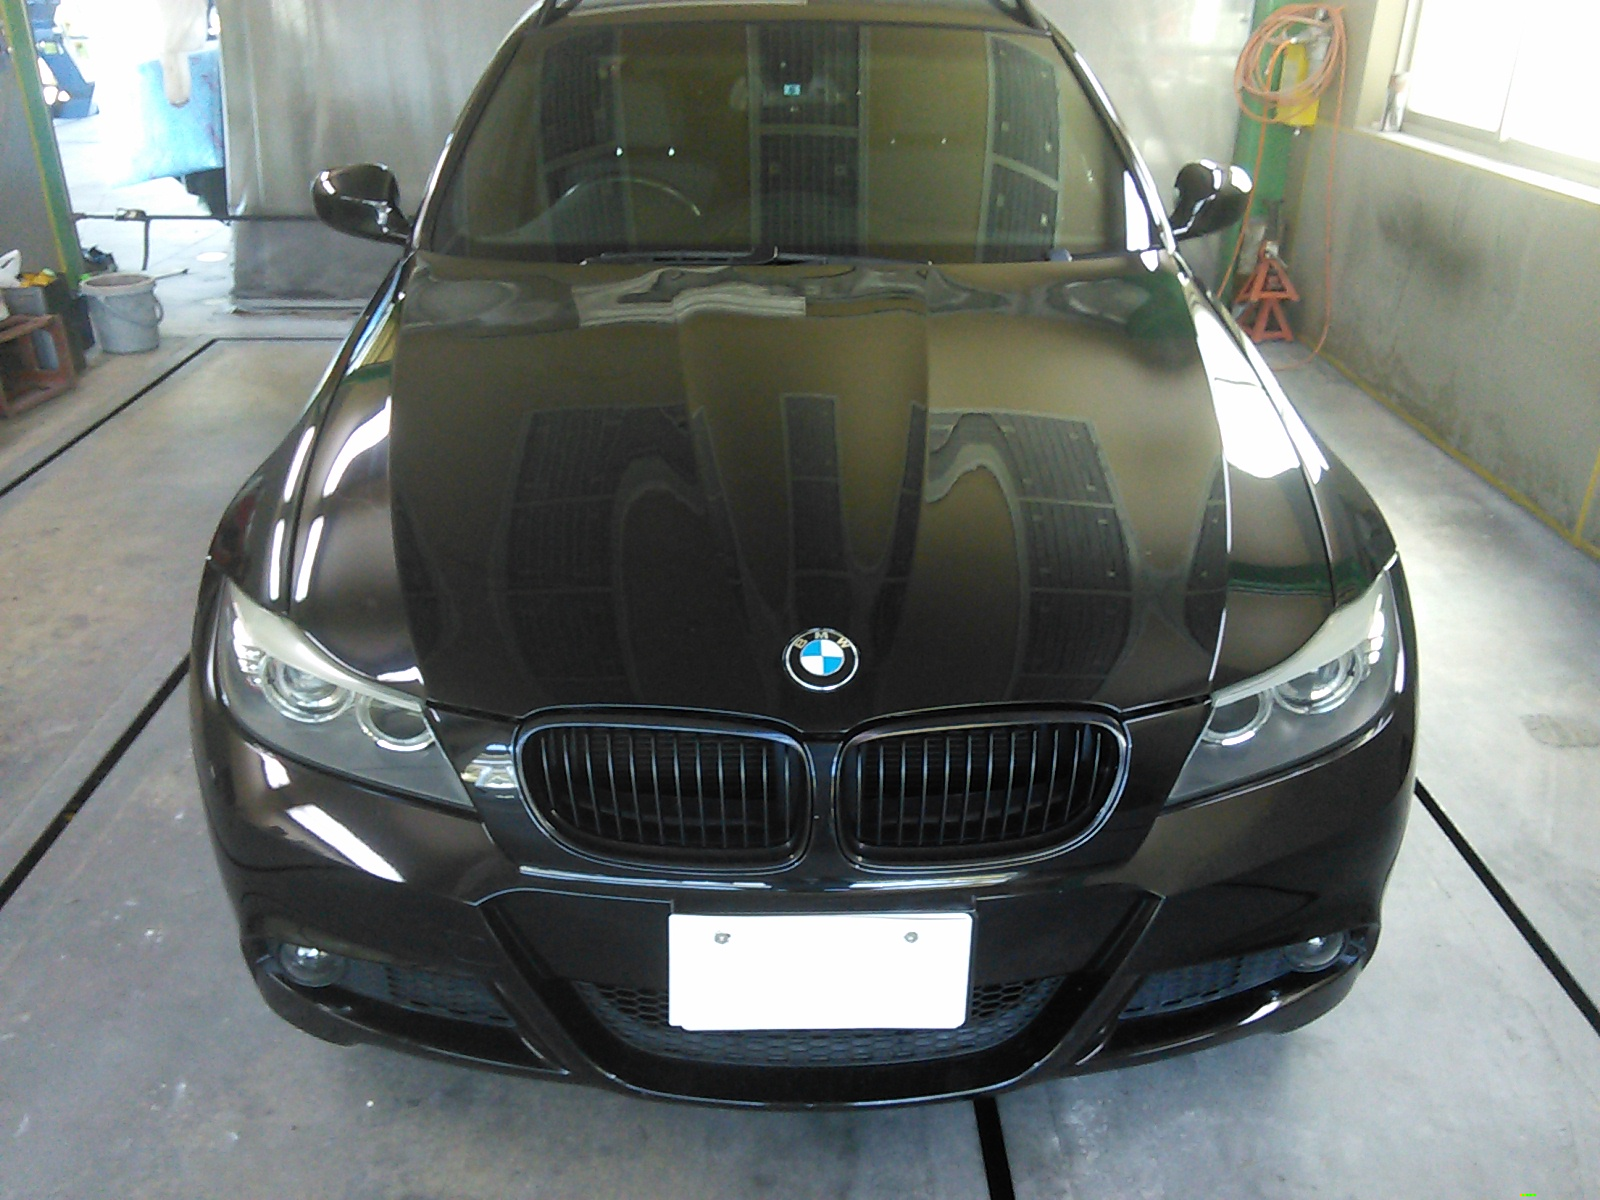 BMW  ボンネット 色ハゲ 飛び石 キズ修理  豊田市 板金塗装